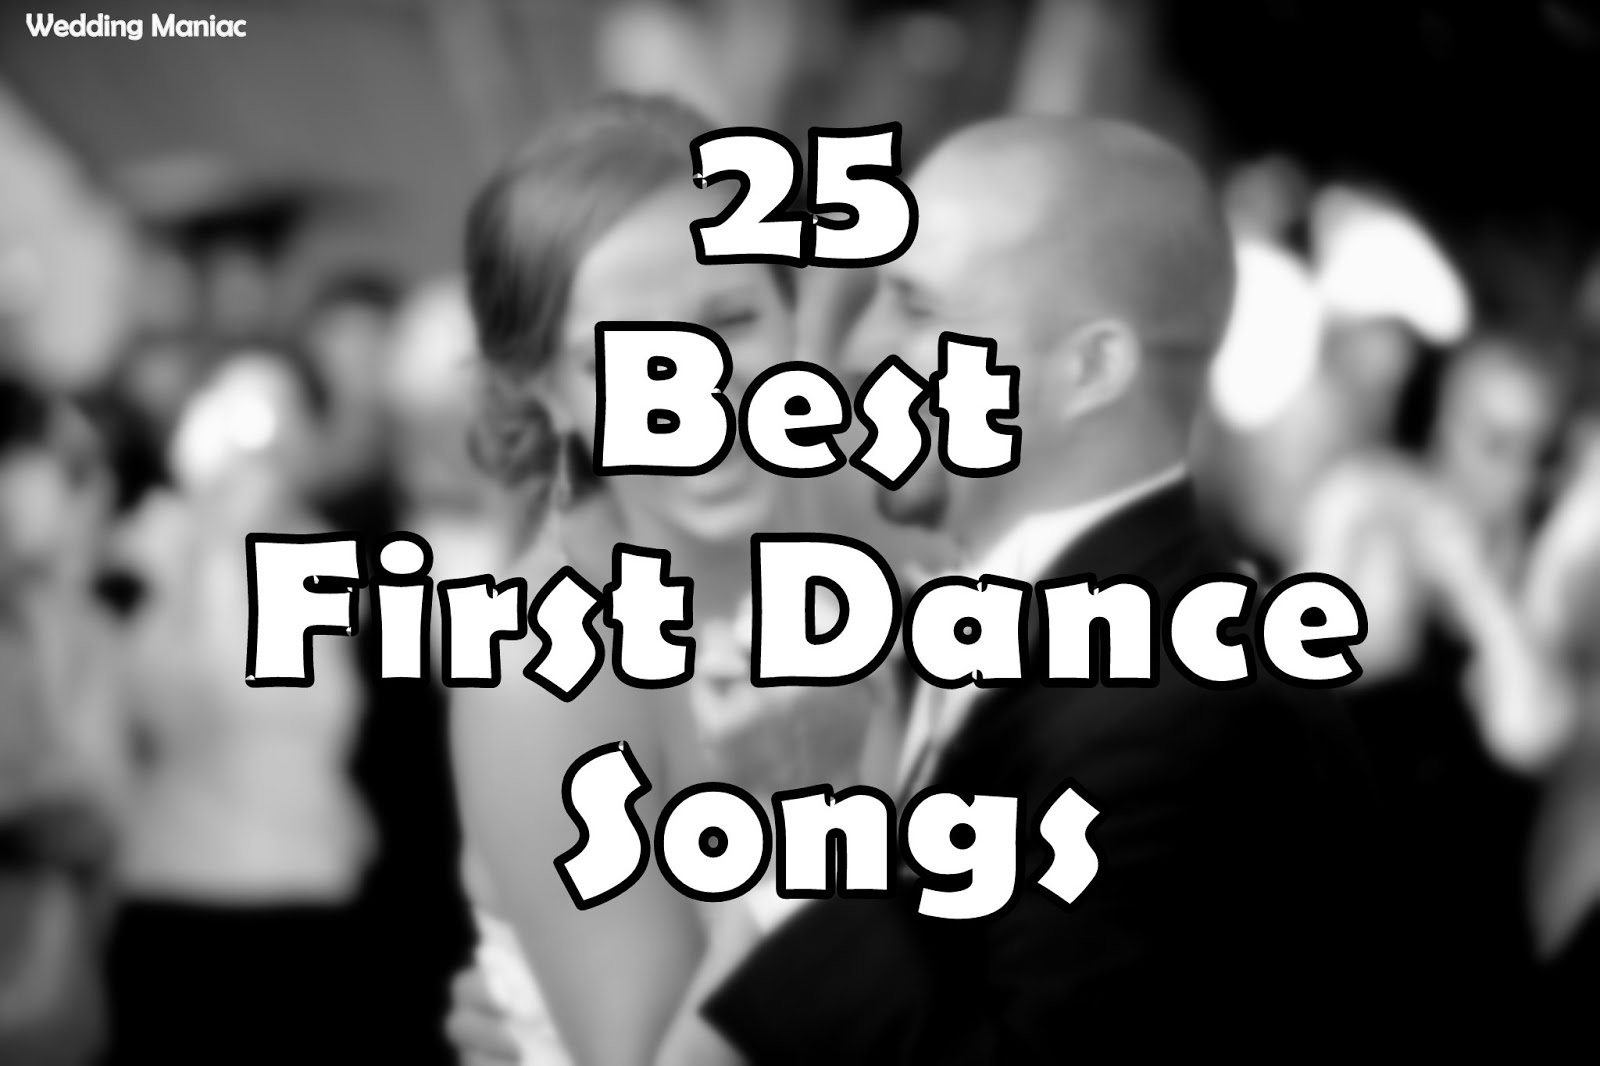 The Best 25 First Dance Songs - WEDDING MANIAC